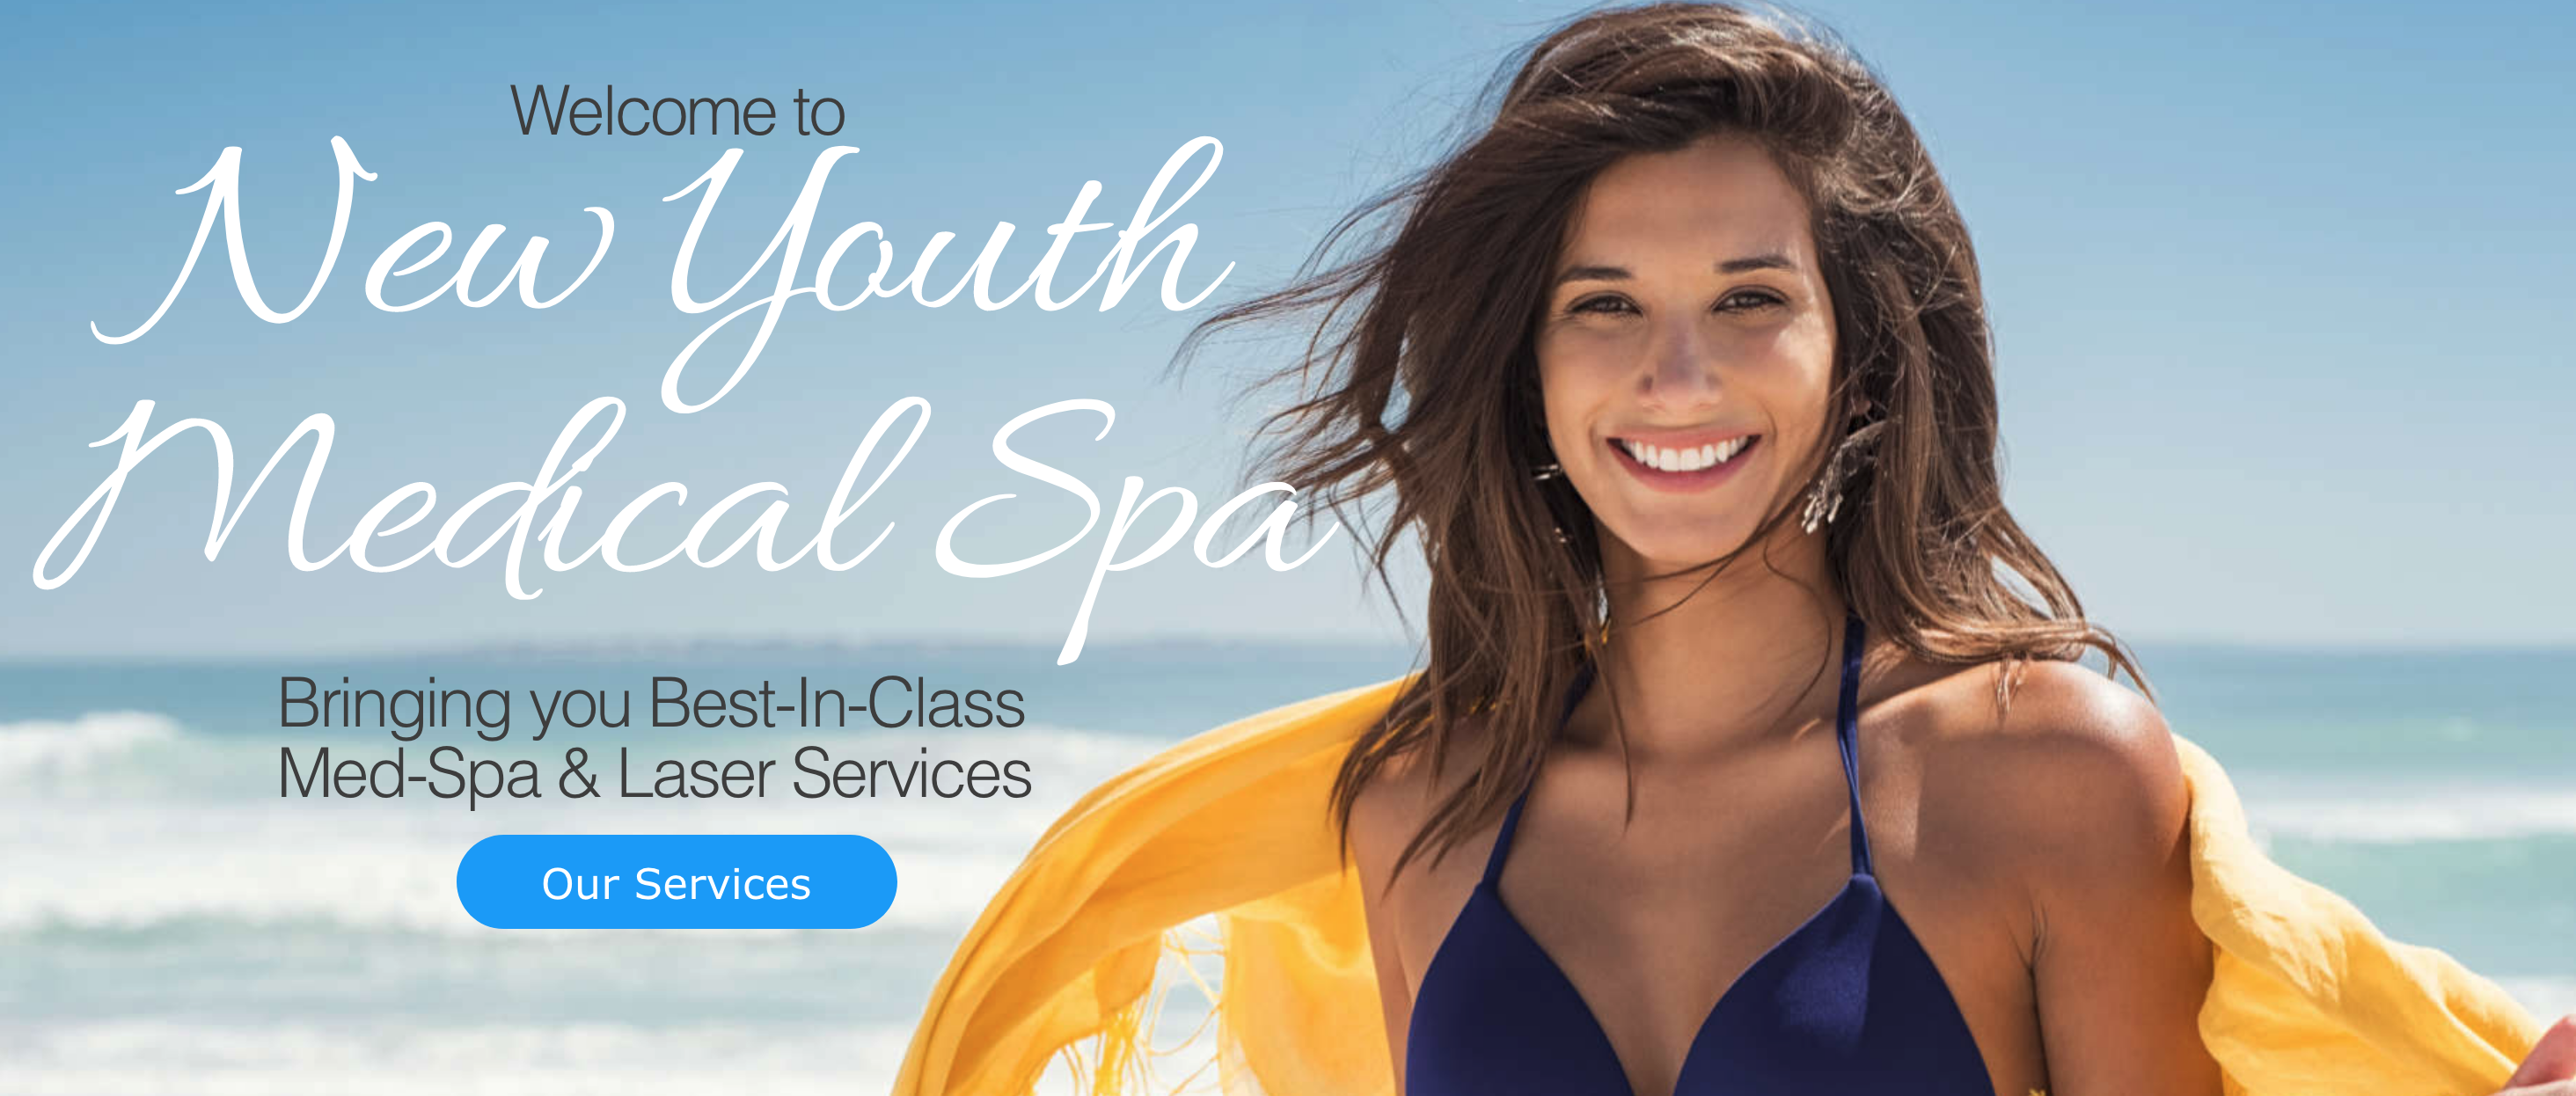 Welcome to New Youth Medical Spa